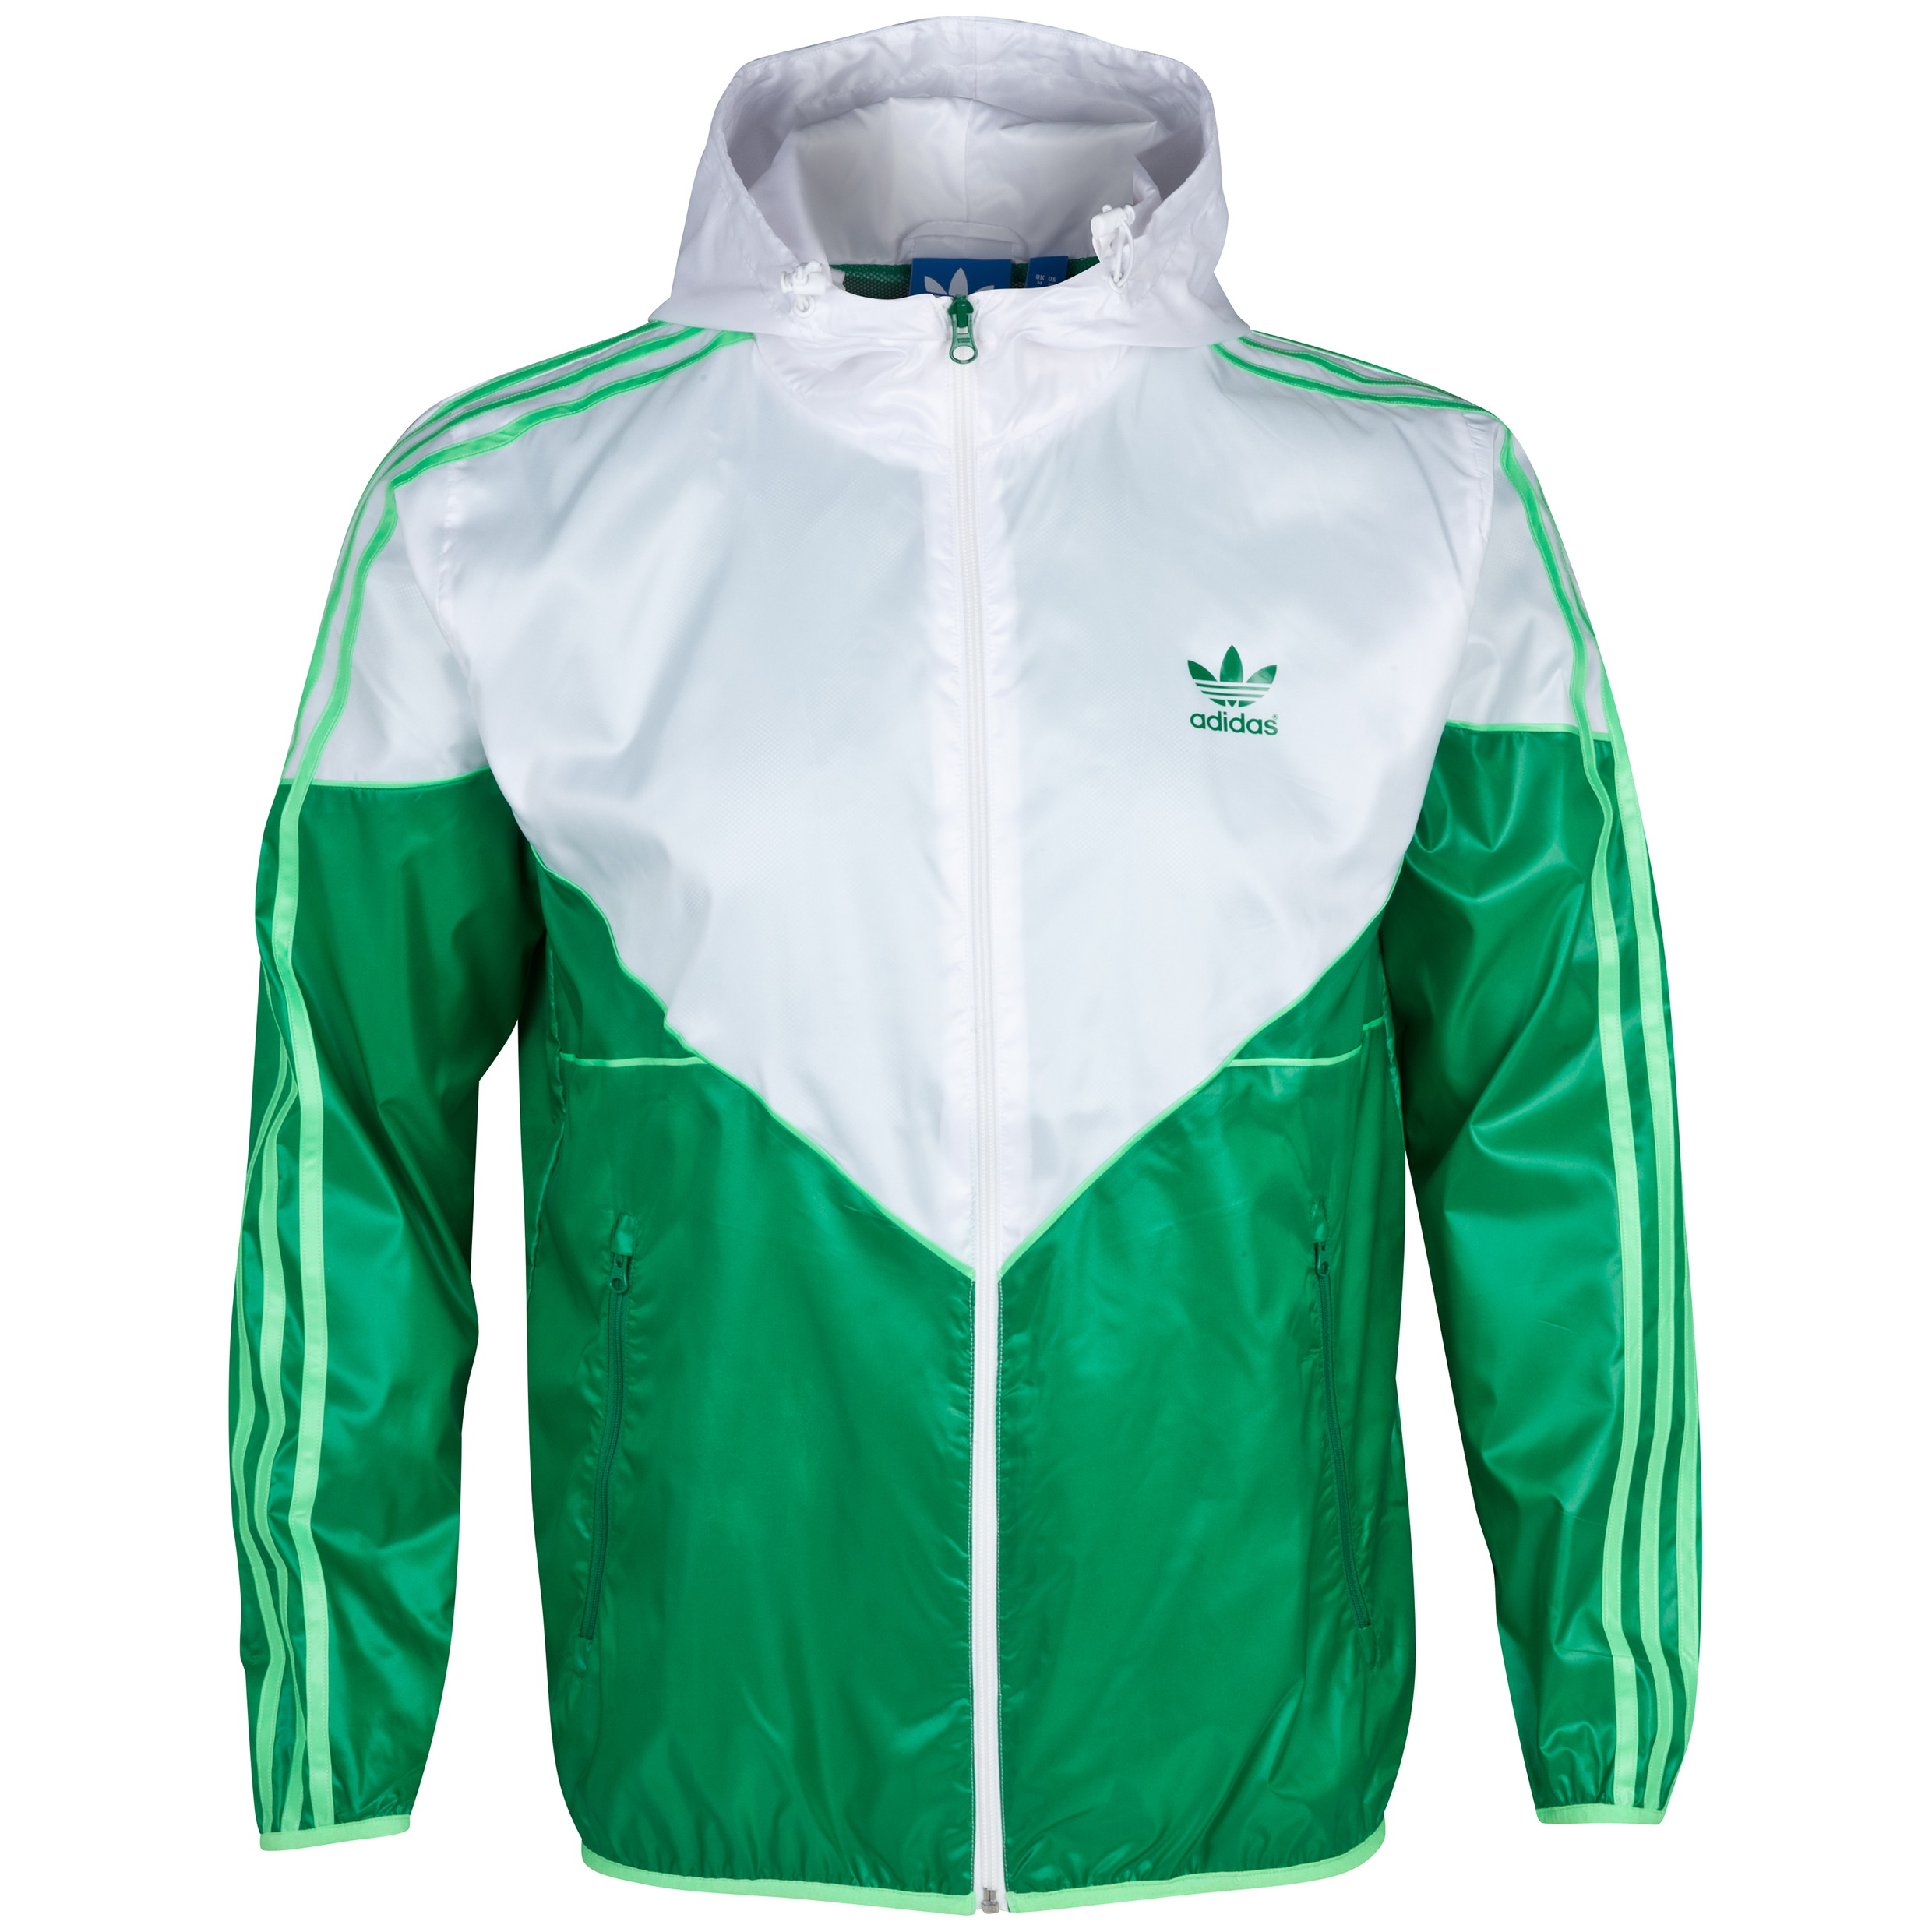 Adidas Originals Colorado Windbreaker - White/Fairway